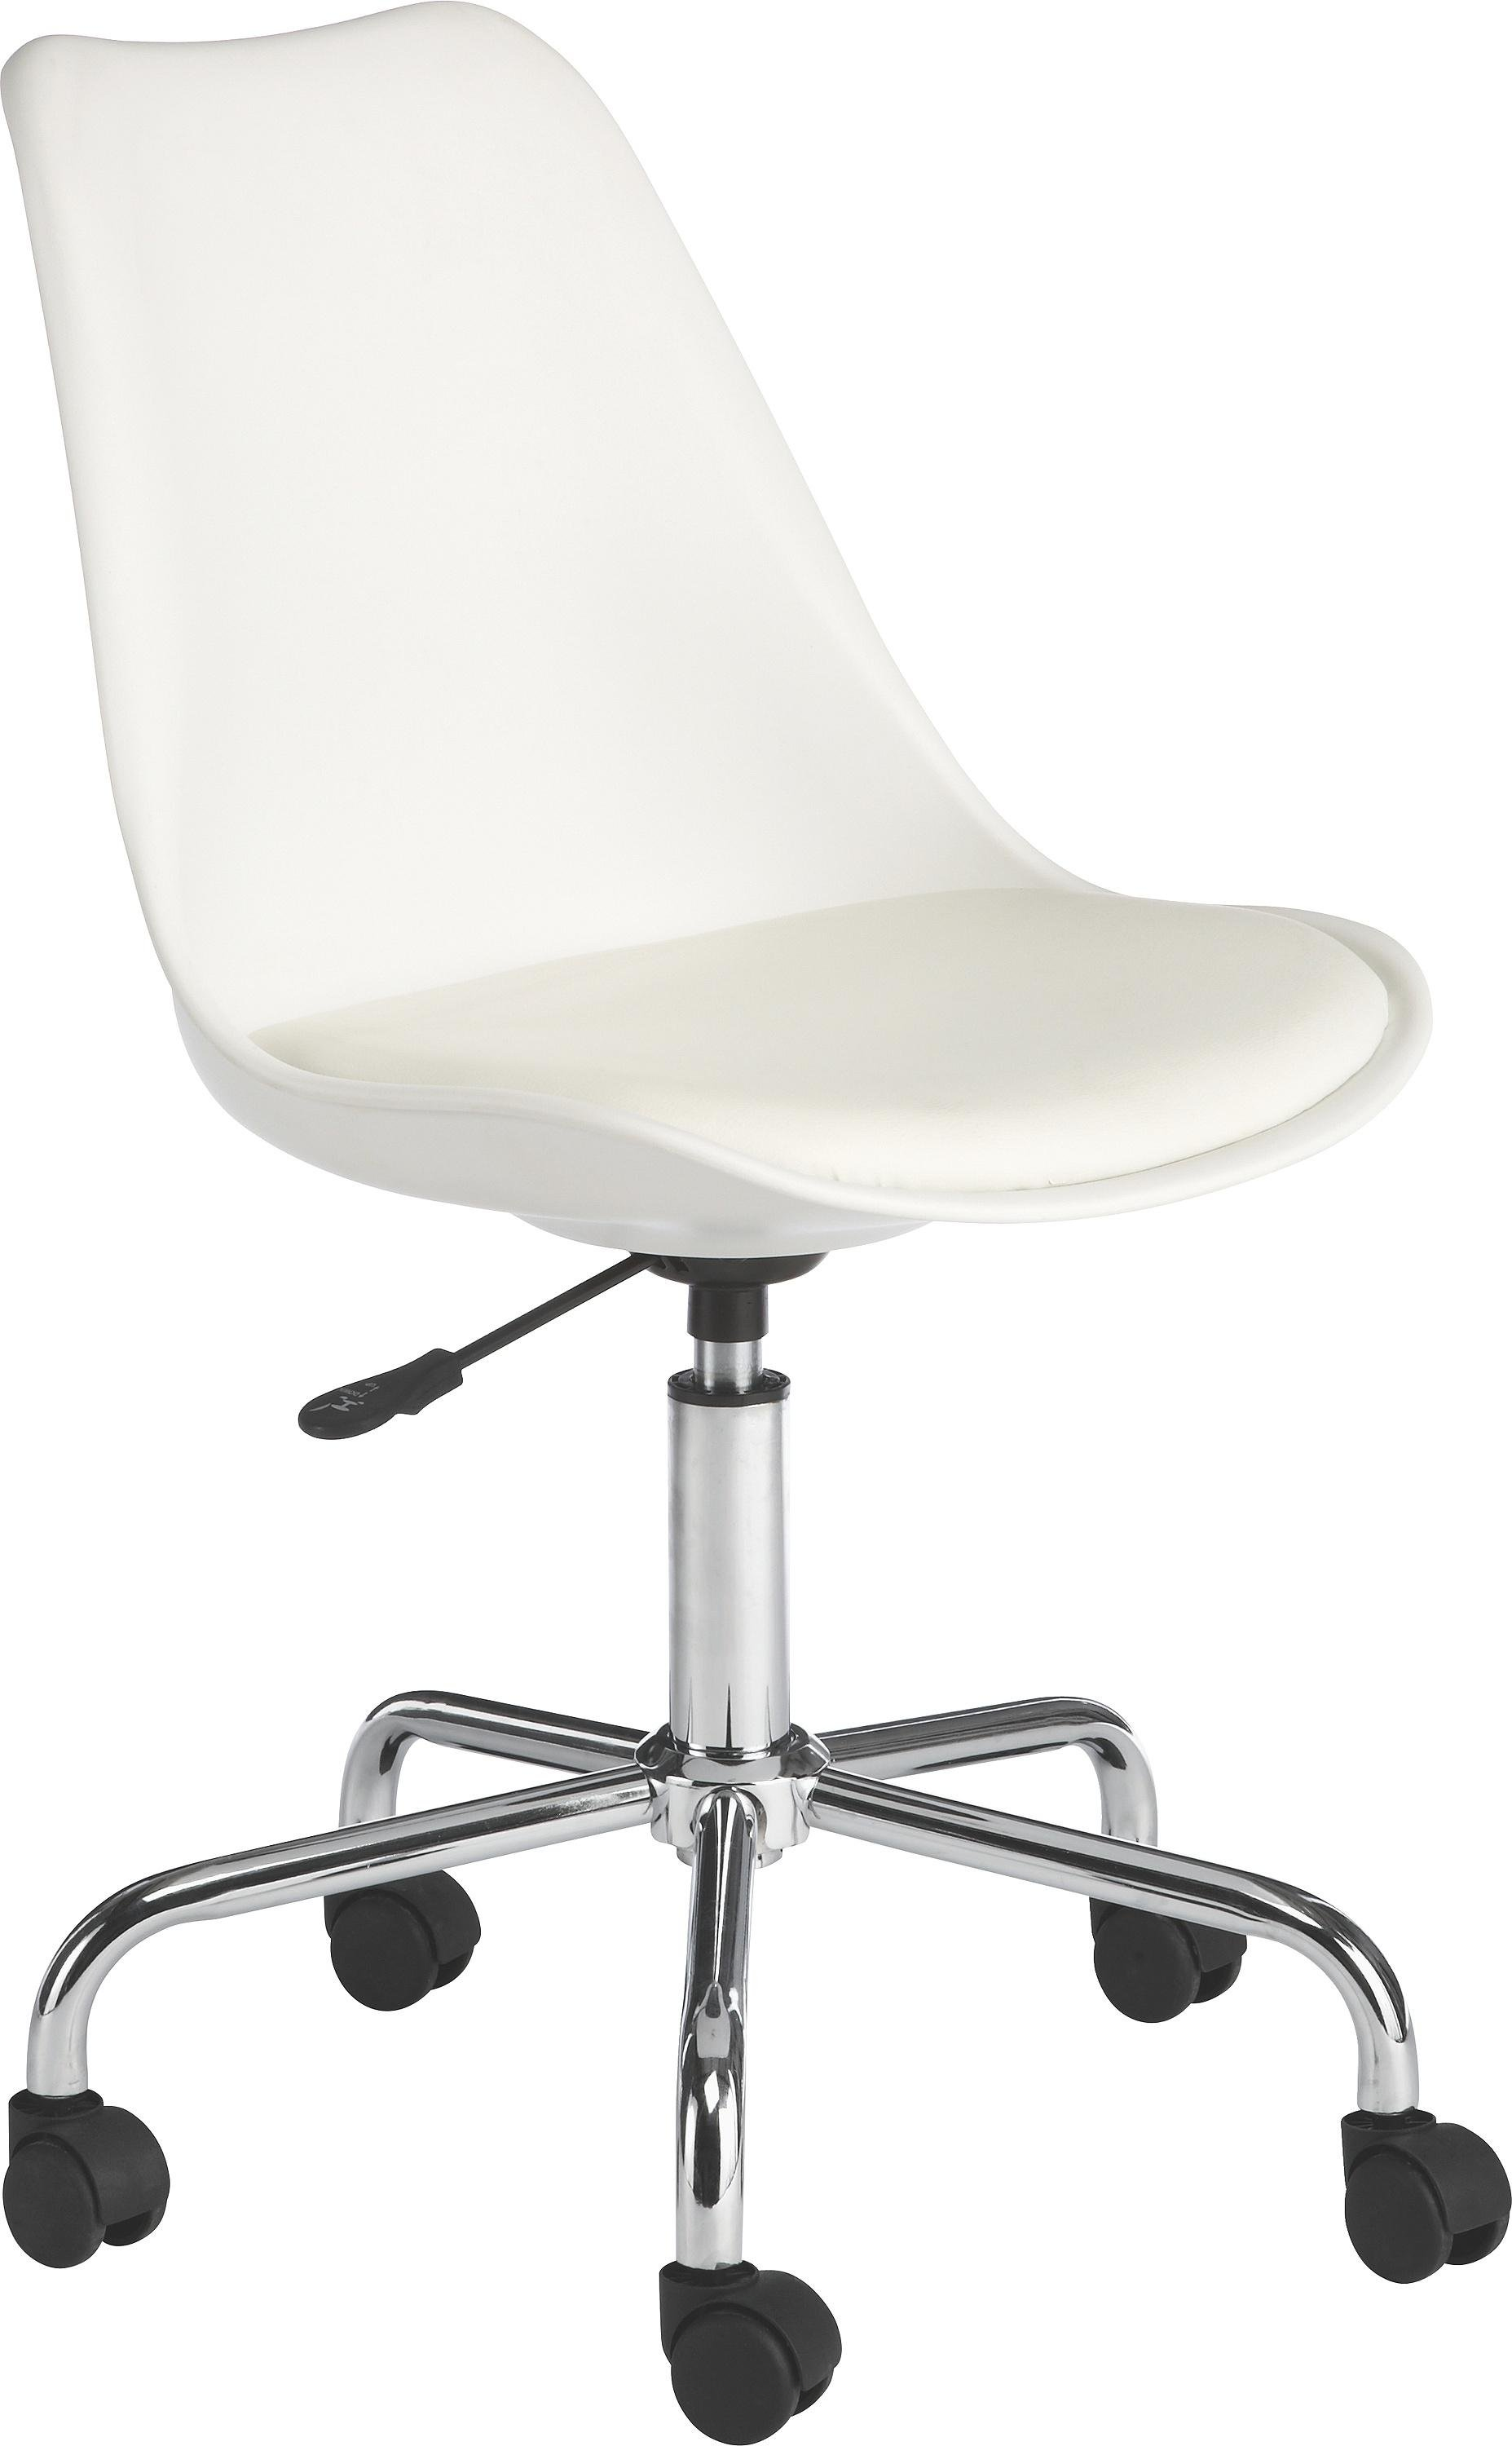 Desk Chairs White buy habitat ginnie office chair - white at argos.co.uk - your